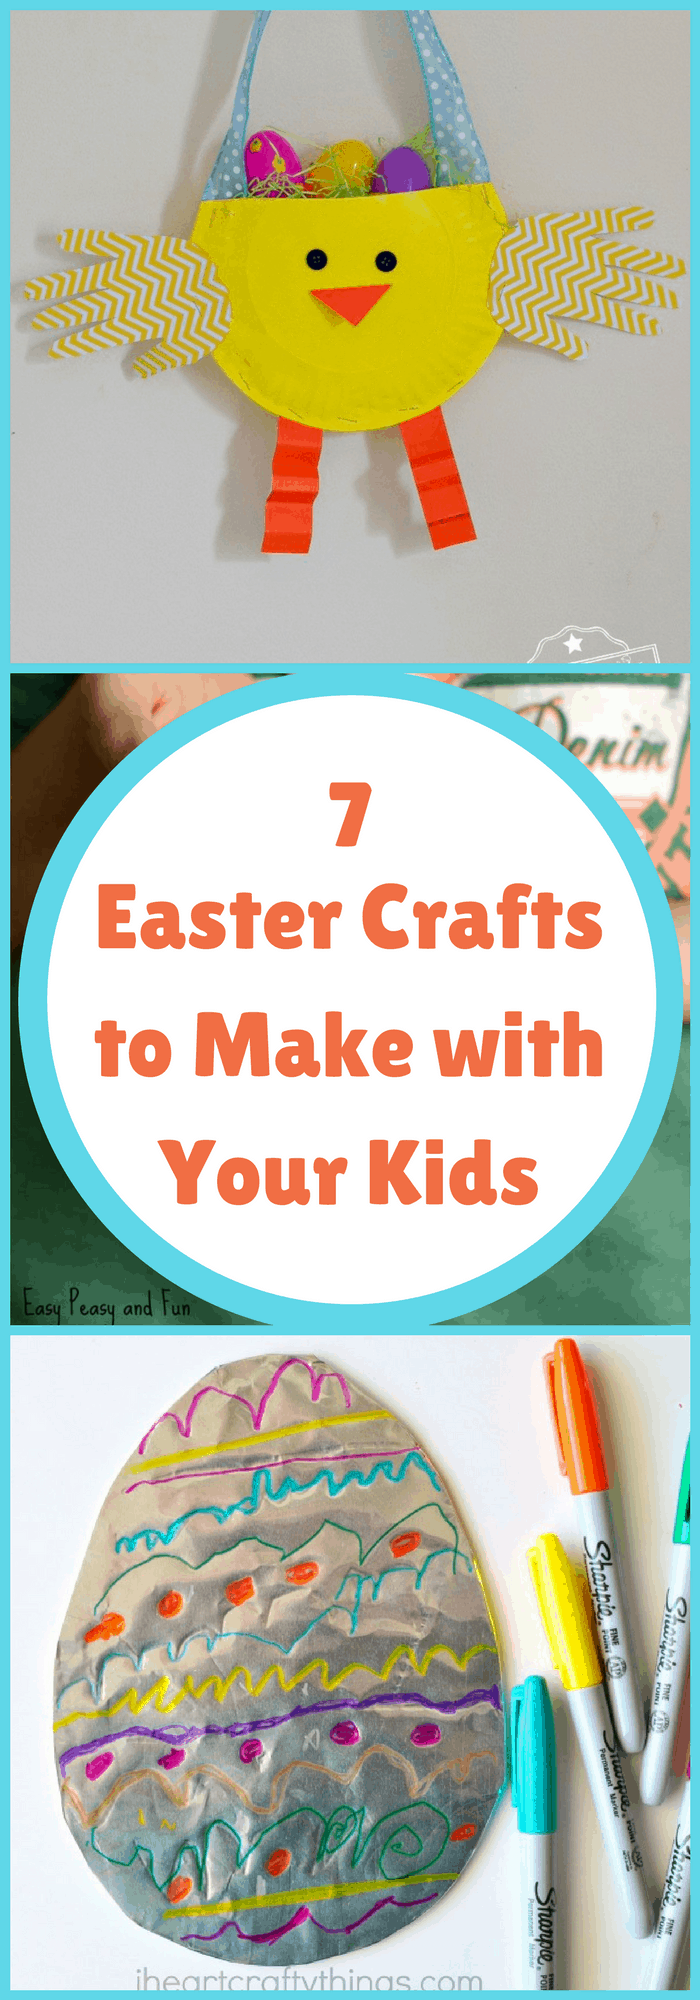 DIY--7 Easter Crafts to Make with Your Kids--The Organized Mom